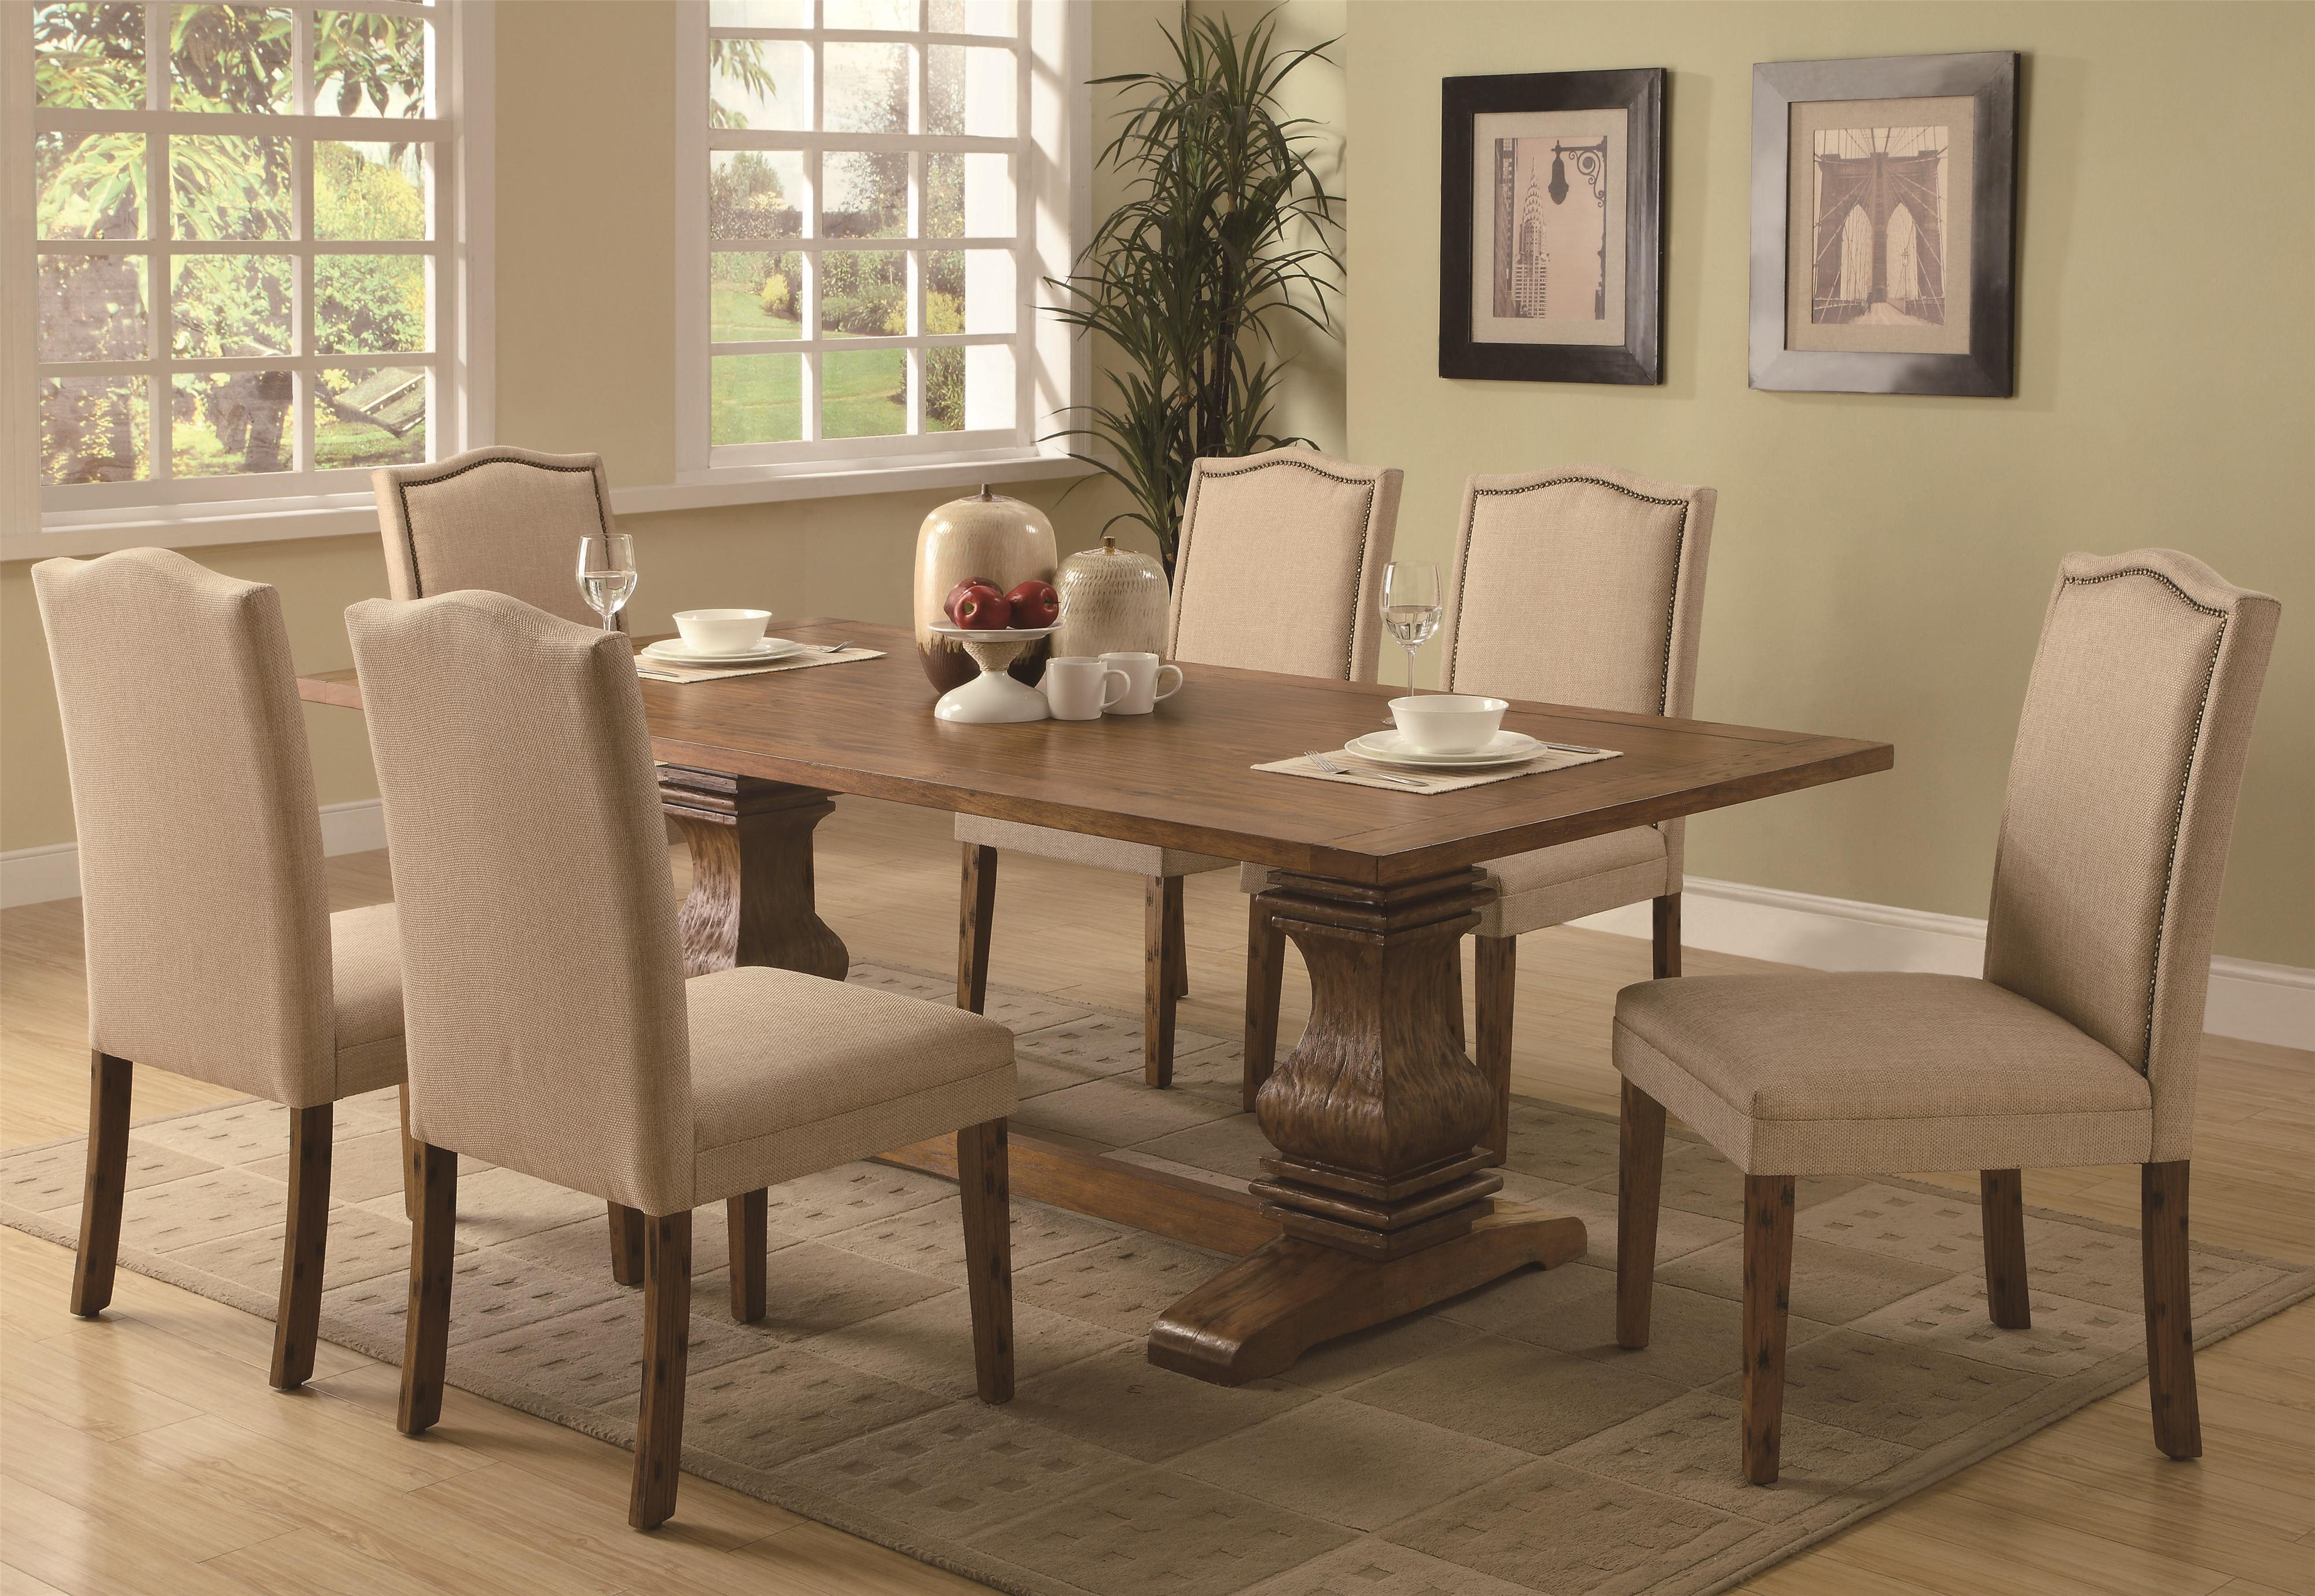 Dining Table with Shaped Double Pedestals by Coaster | Wolf and ...